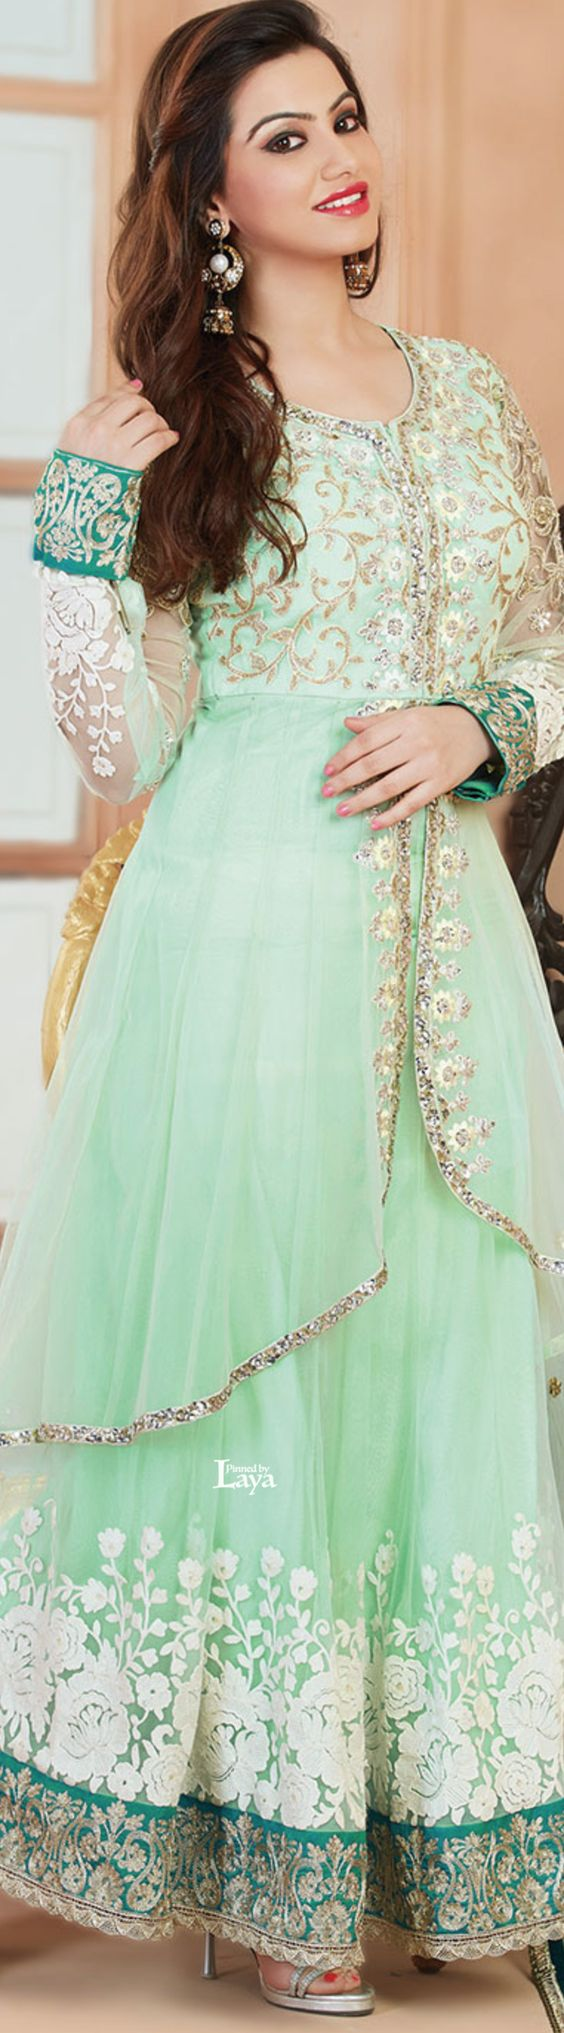 Party Wear & Wedding Wear Frocks Collection For Girls 2016-2017 (28)